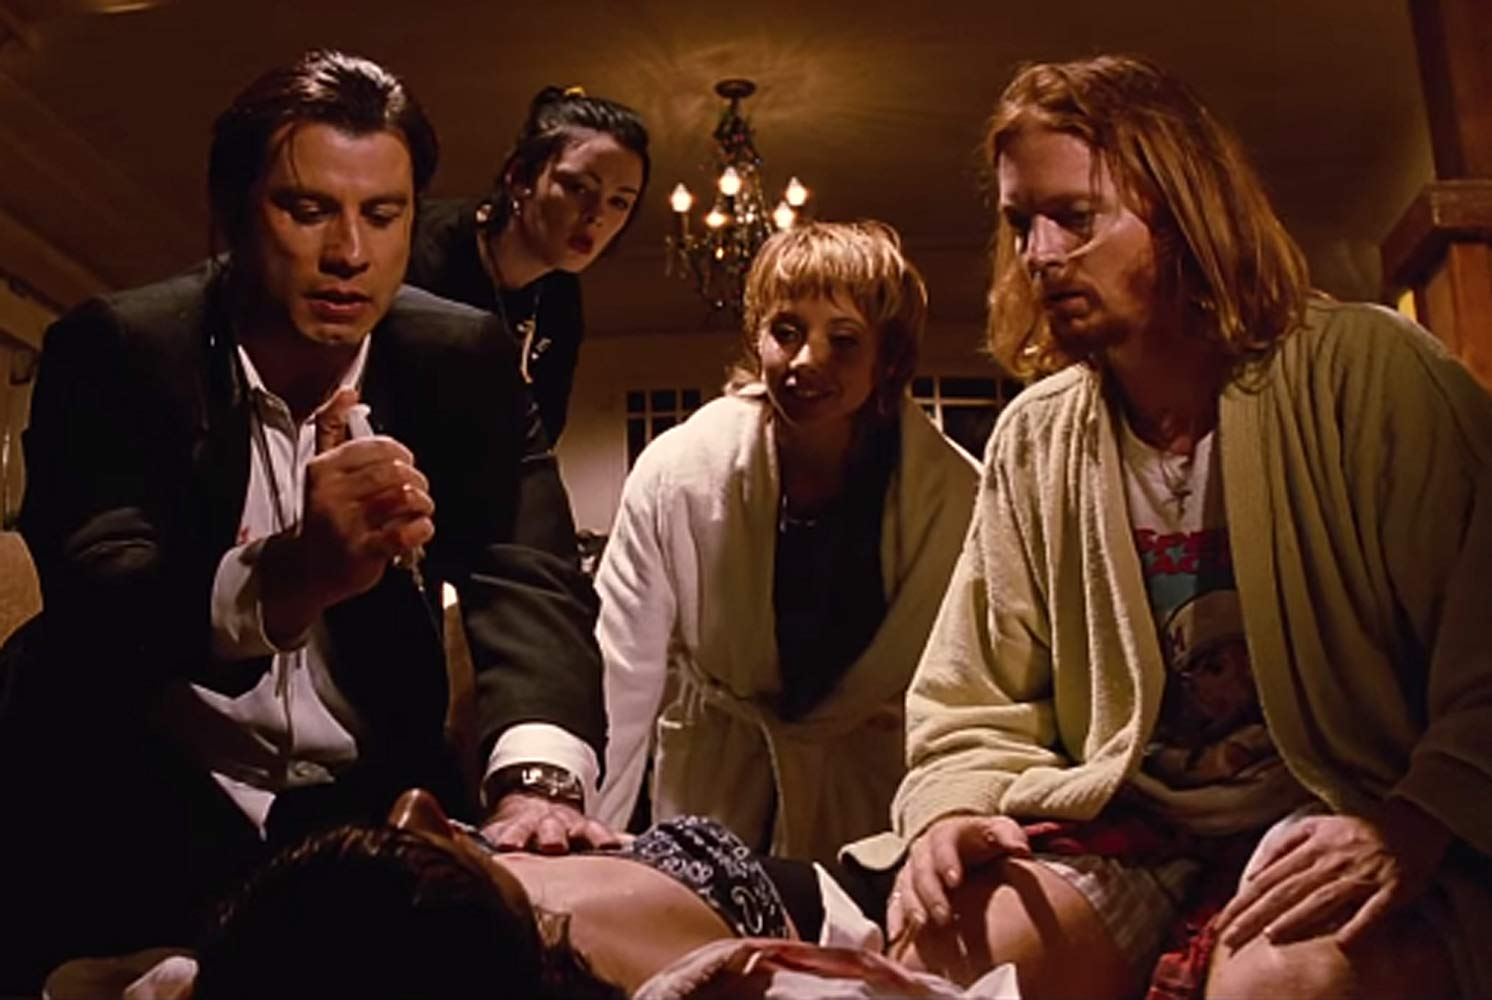 Scene from the movie, Pulp Fiction